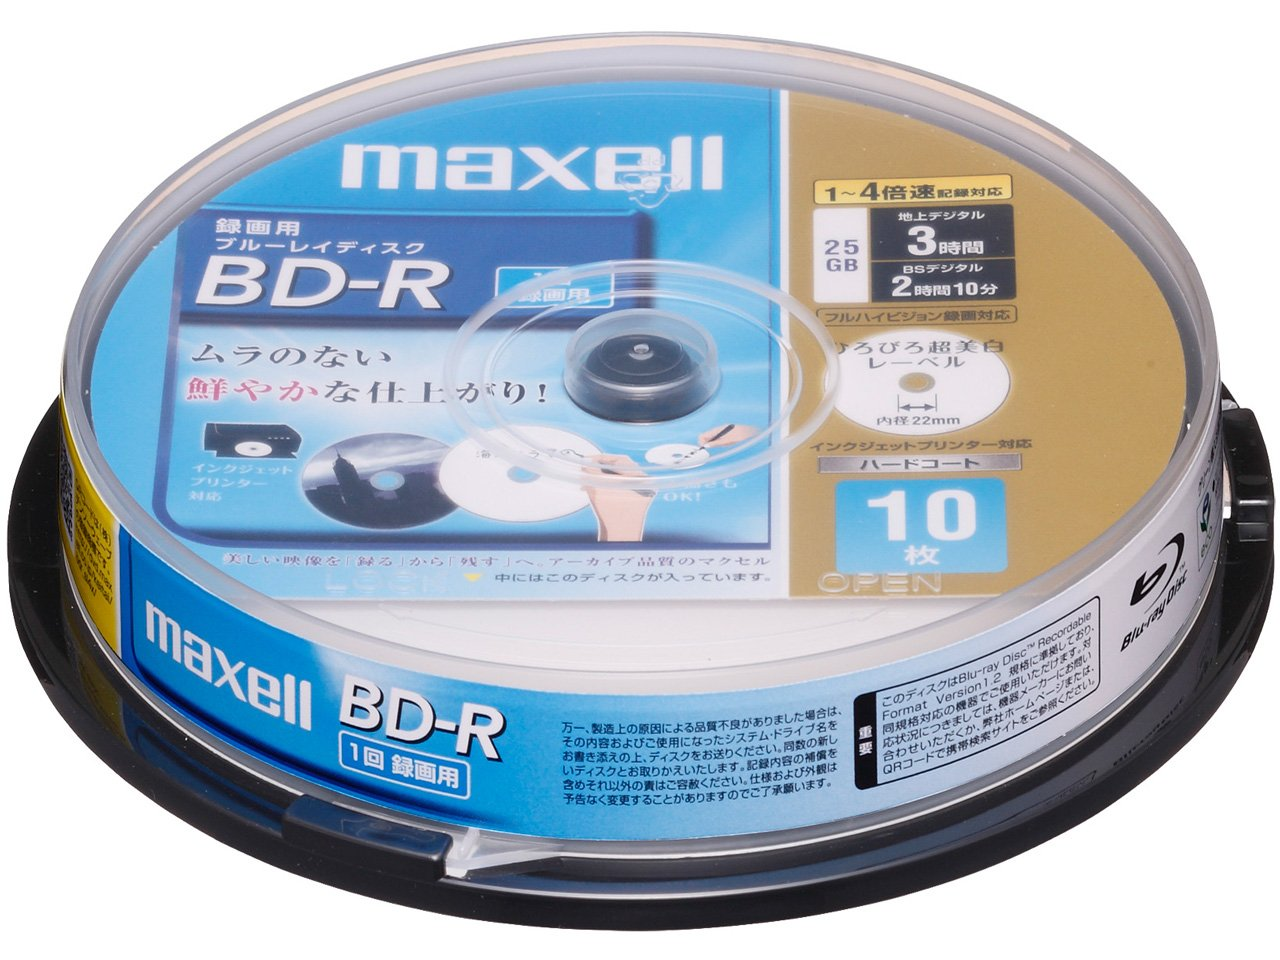 10 Maxell Bluray BD-R 25GB Single Layer 4x Speed Inkjet Printable Sealed in Spindle LYSB00F3PAEDA-CMPTRACCS